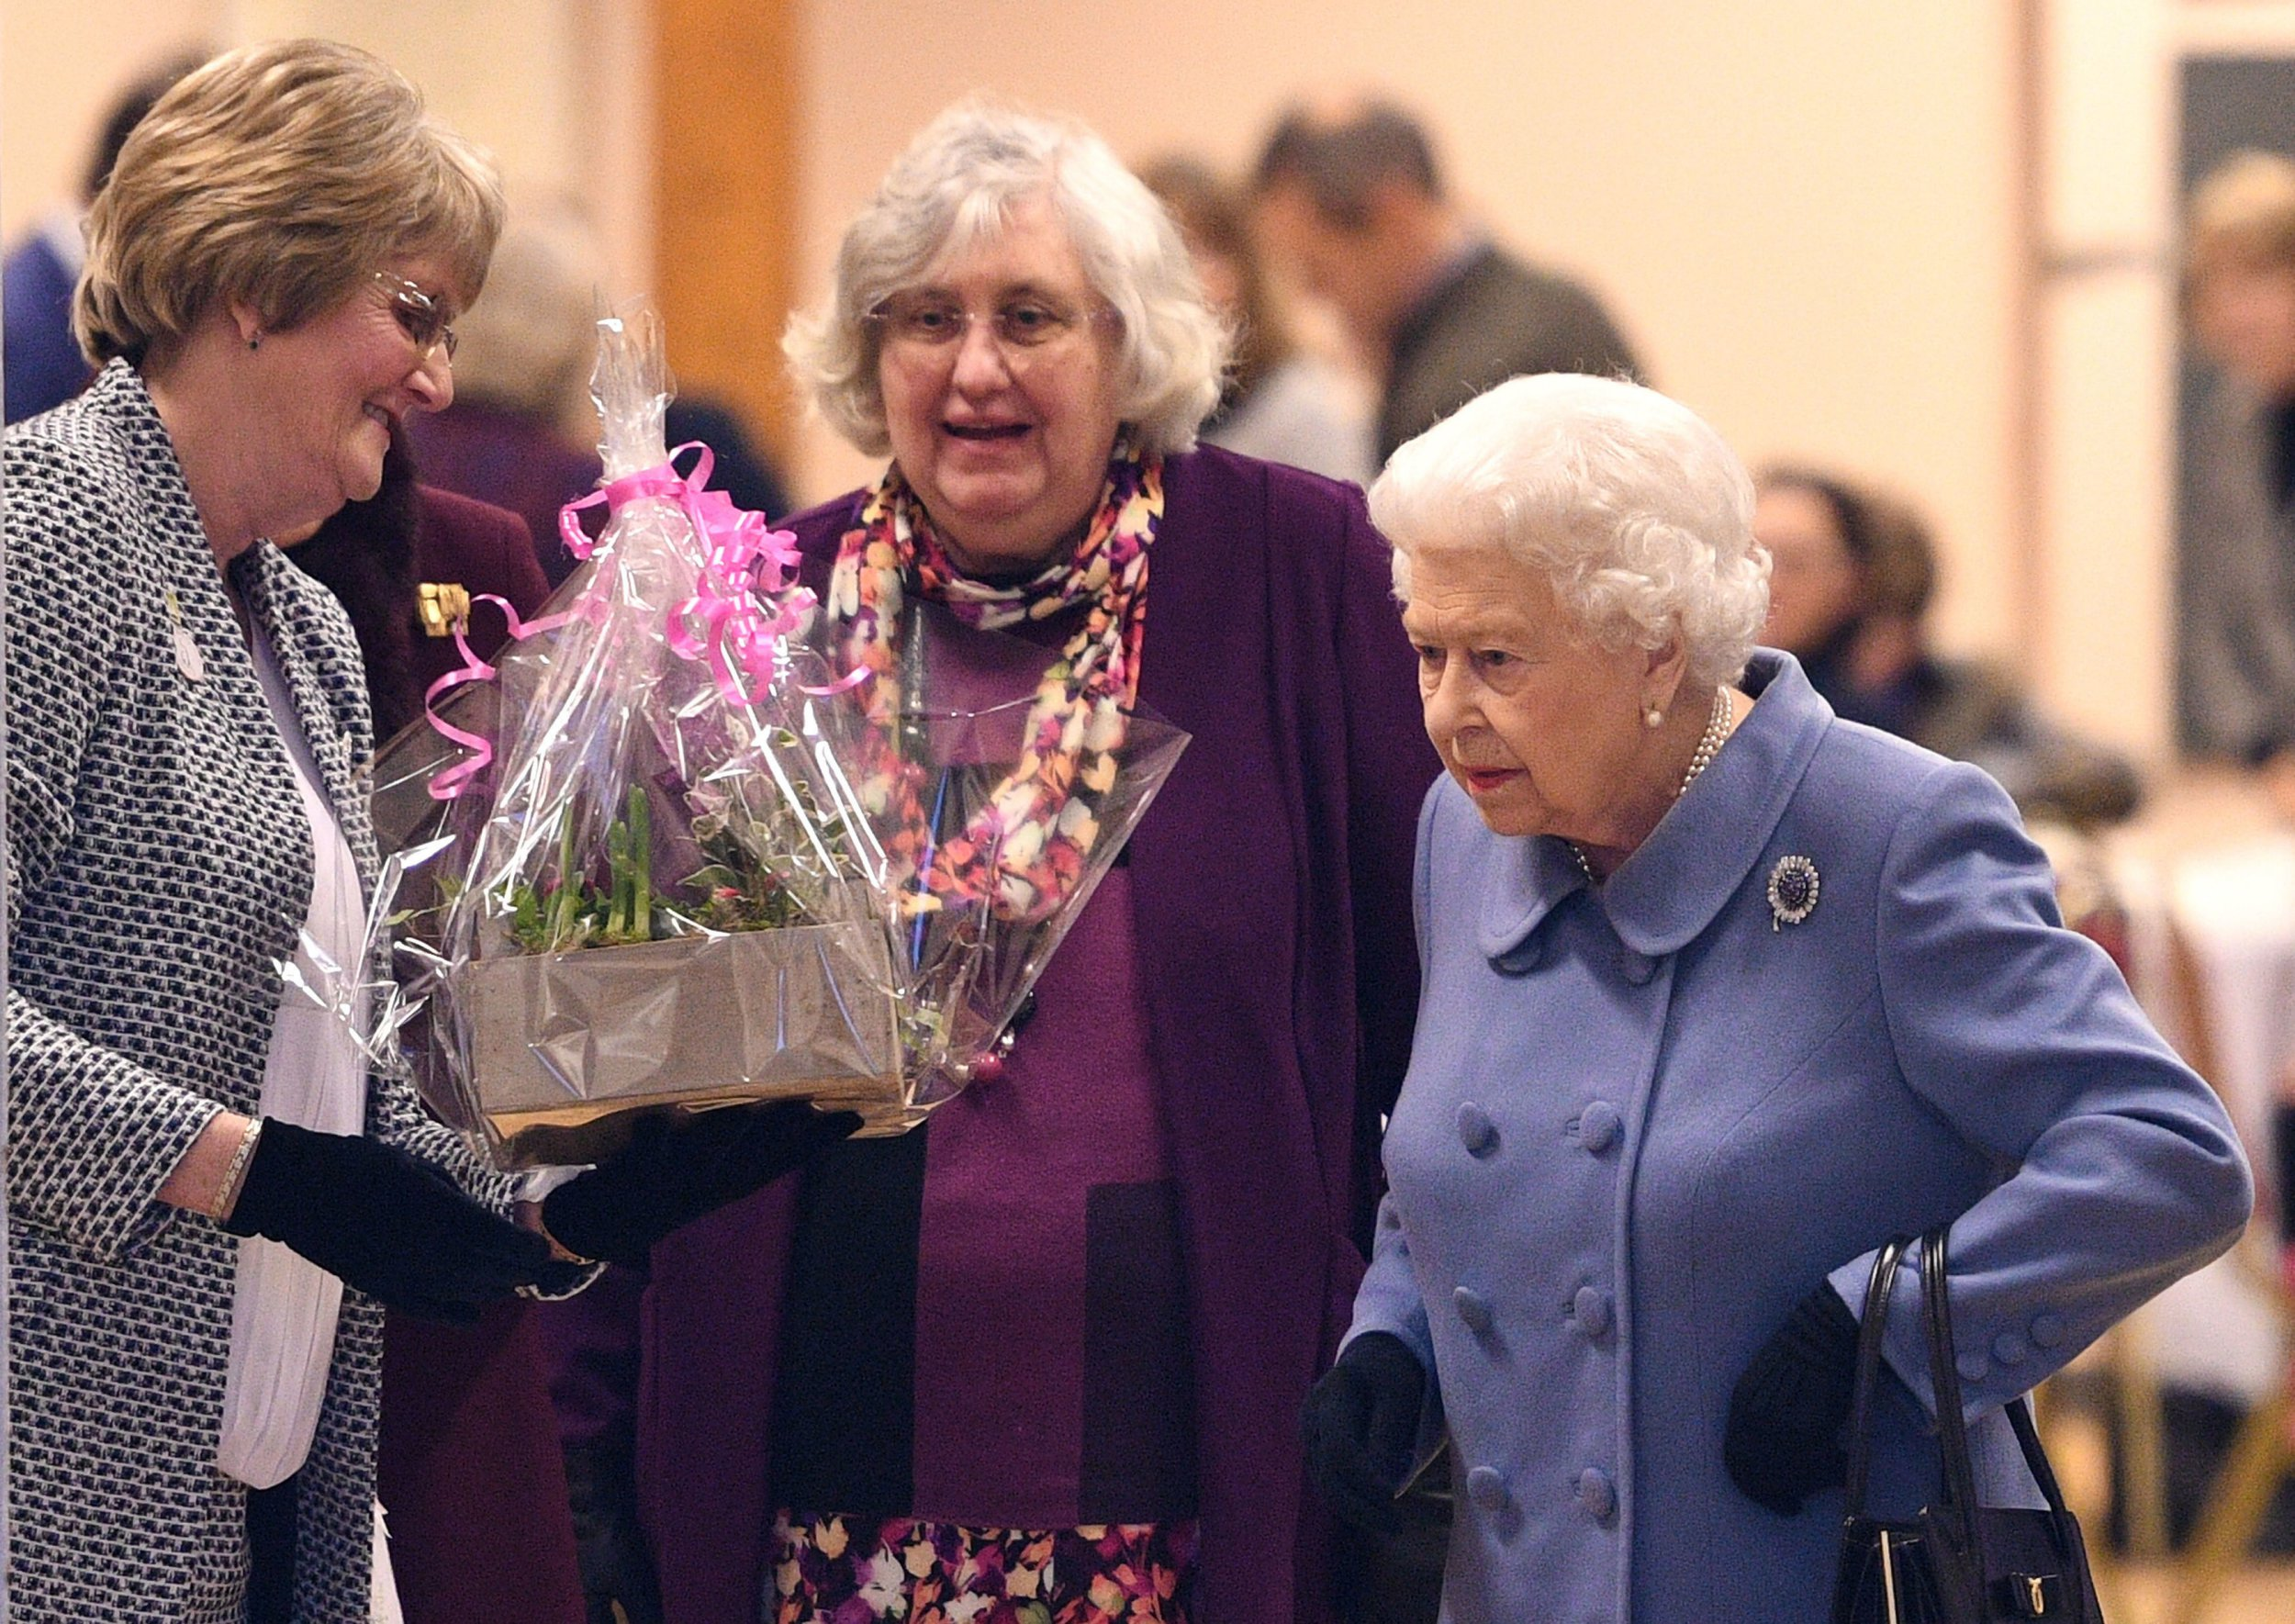 Queen Elizabeth II (right) leaves after attending a Sandringham Women's Institute (WI) meeting at West Newton Village Hall, Norfolk. PRESS ASSOCIATION Photo. Picture date: Thursday January 24, 2019. Photo credit should read: Joe Giddens/PA Wire